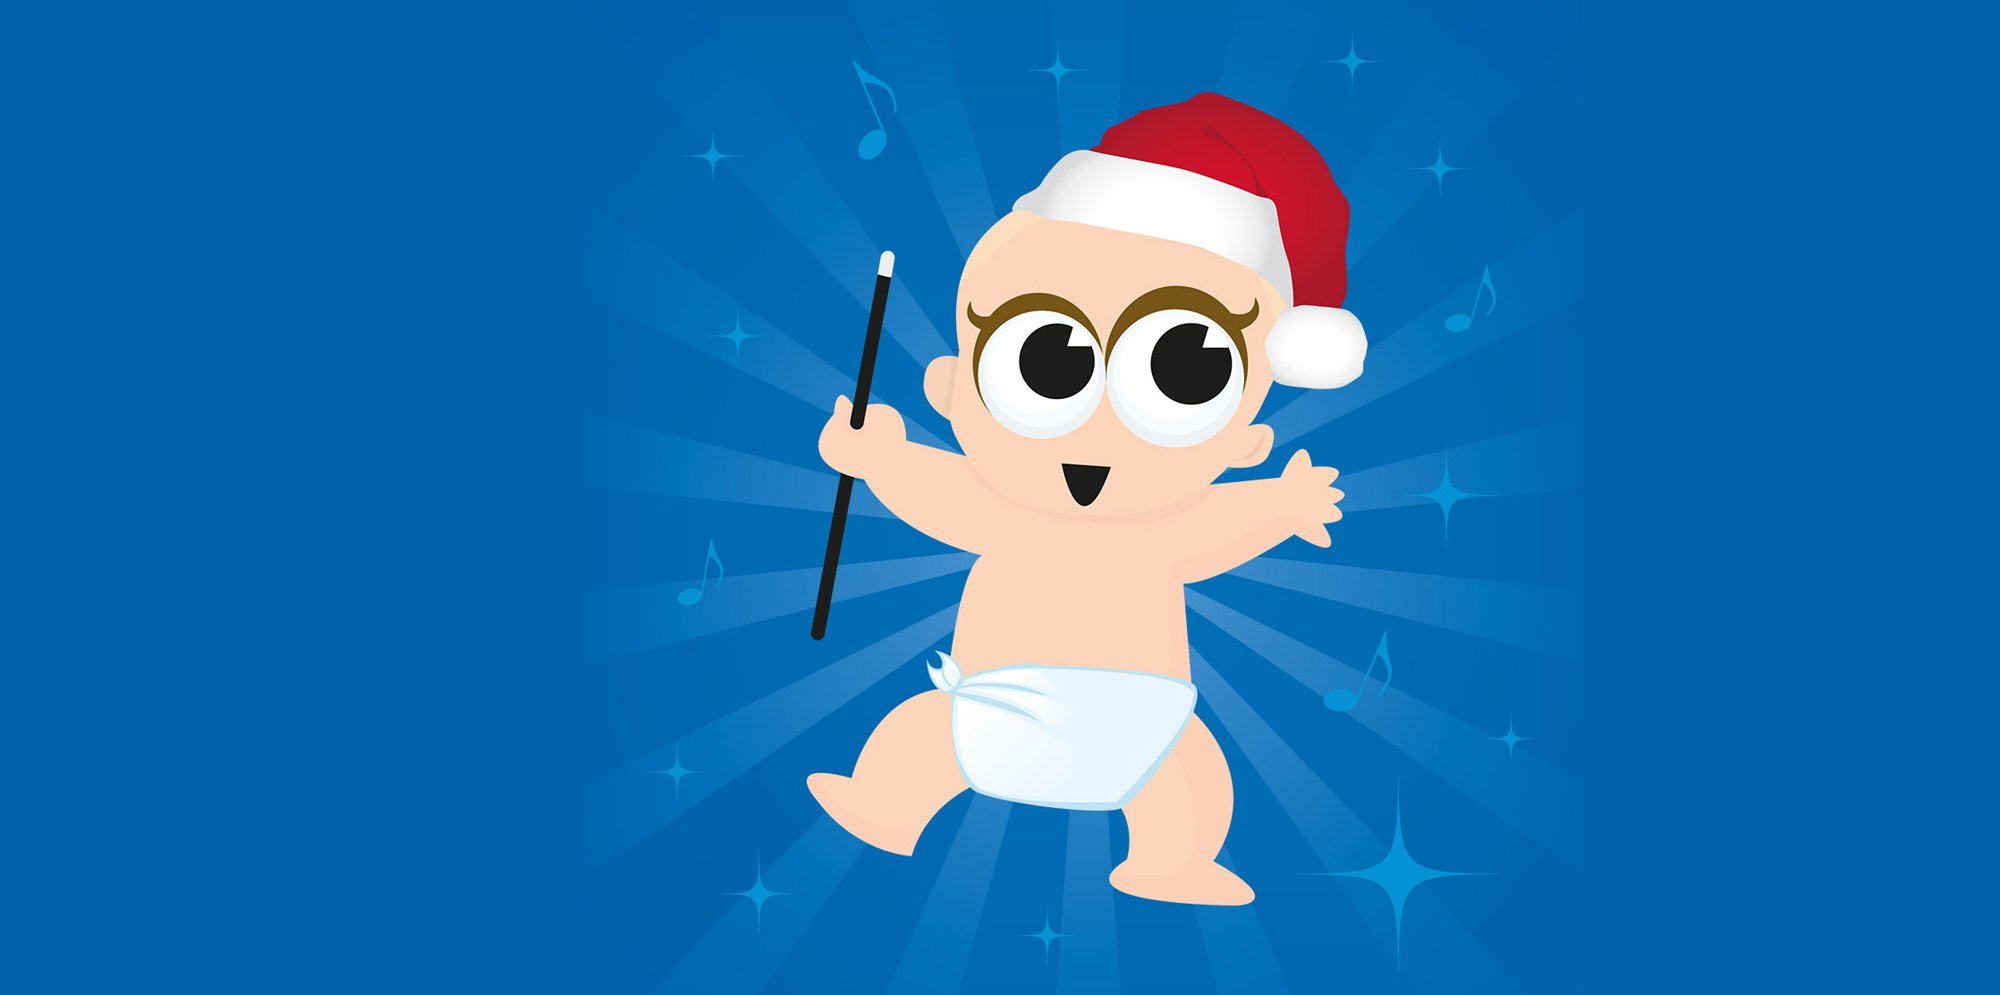 Baby Broadway: an illustration of a baby in a white nappy wearing a Santa hat and waving a  conducting stick.